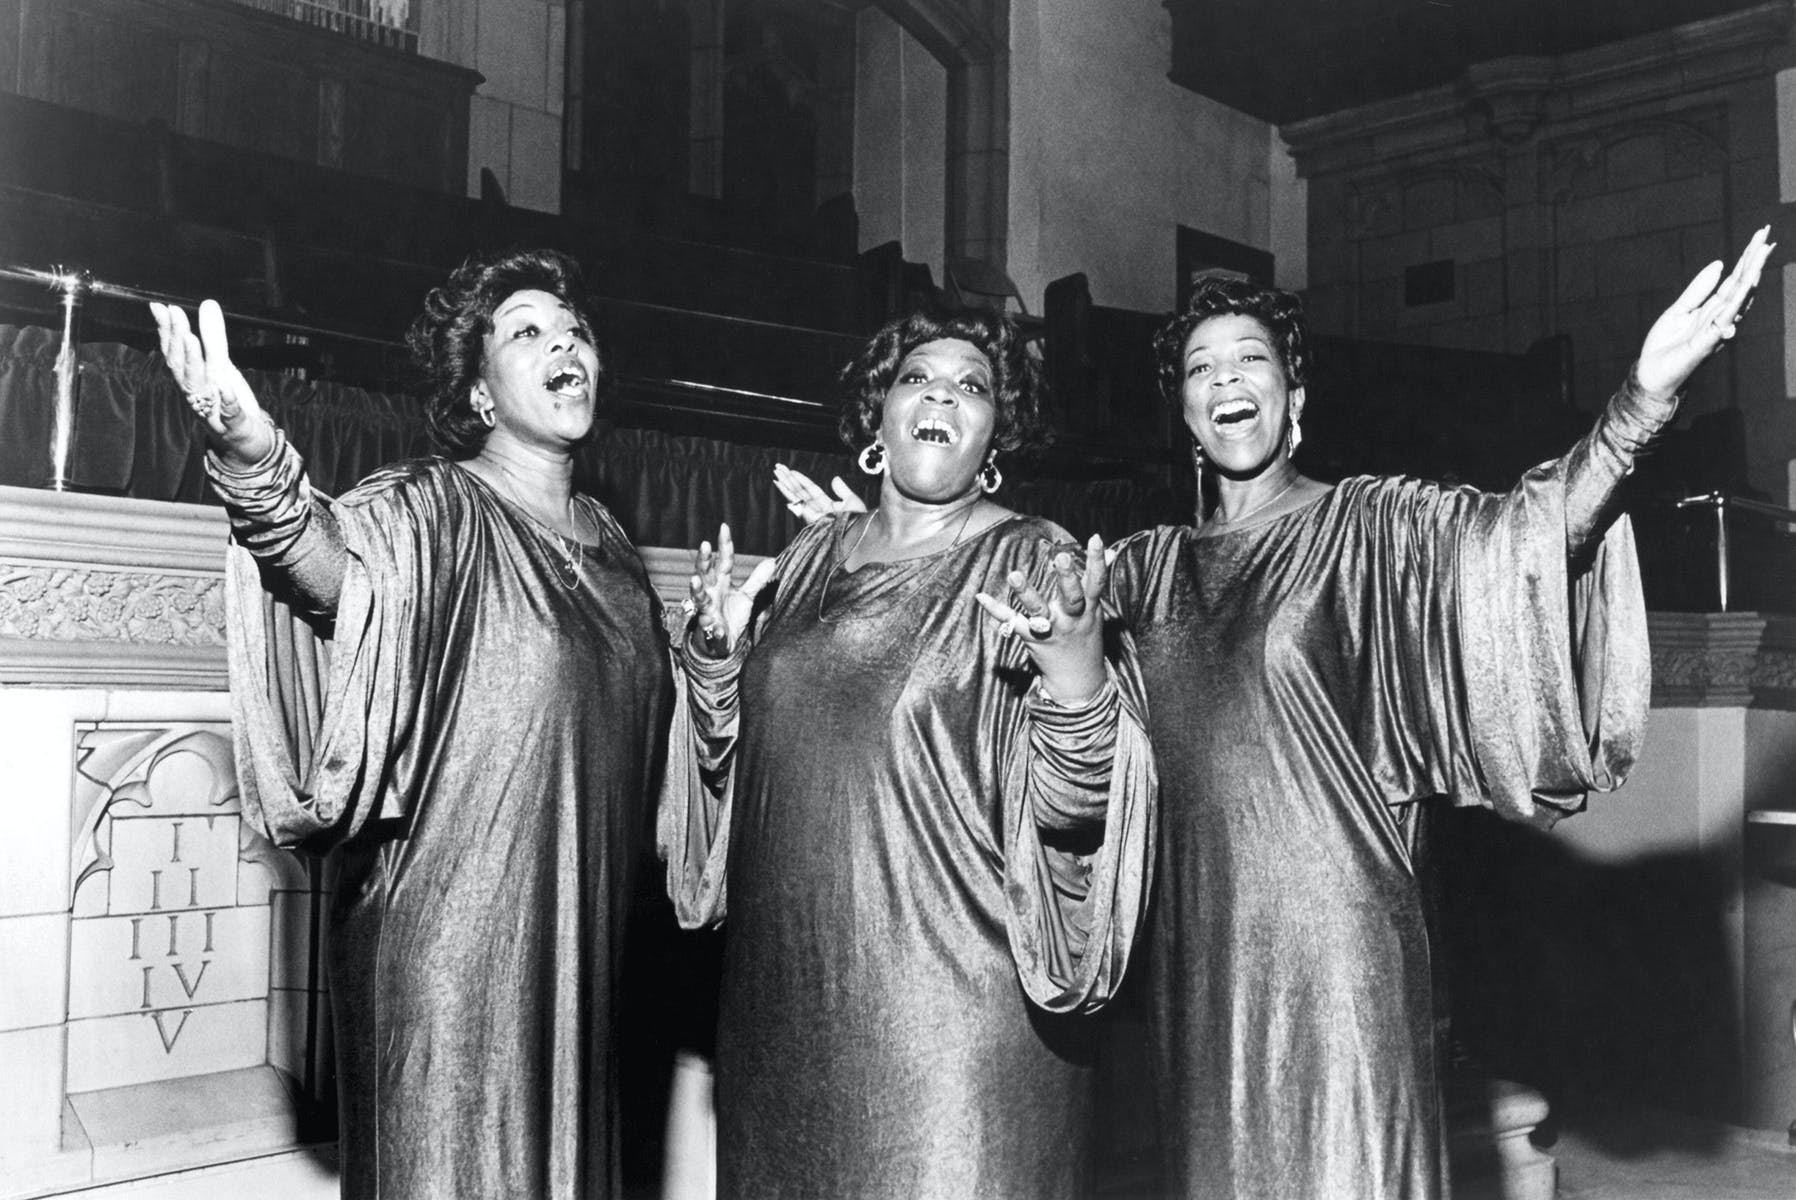 Three women in choir robes singing.